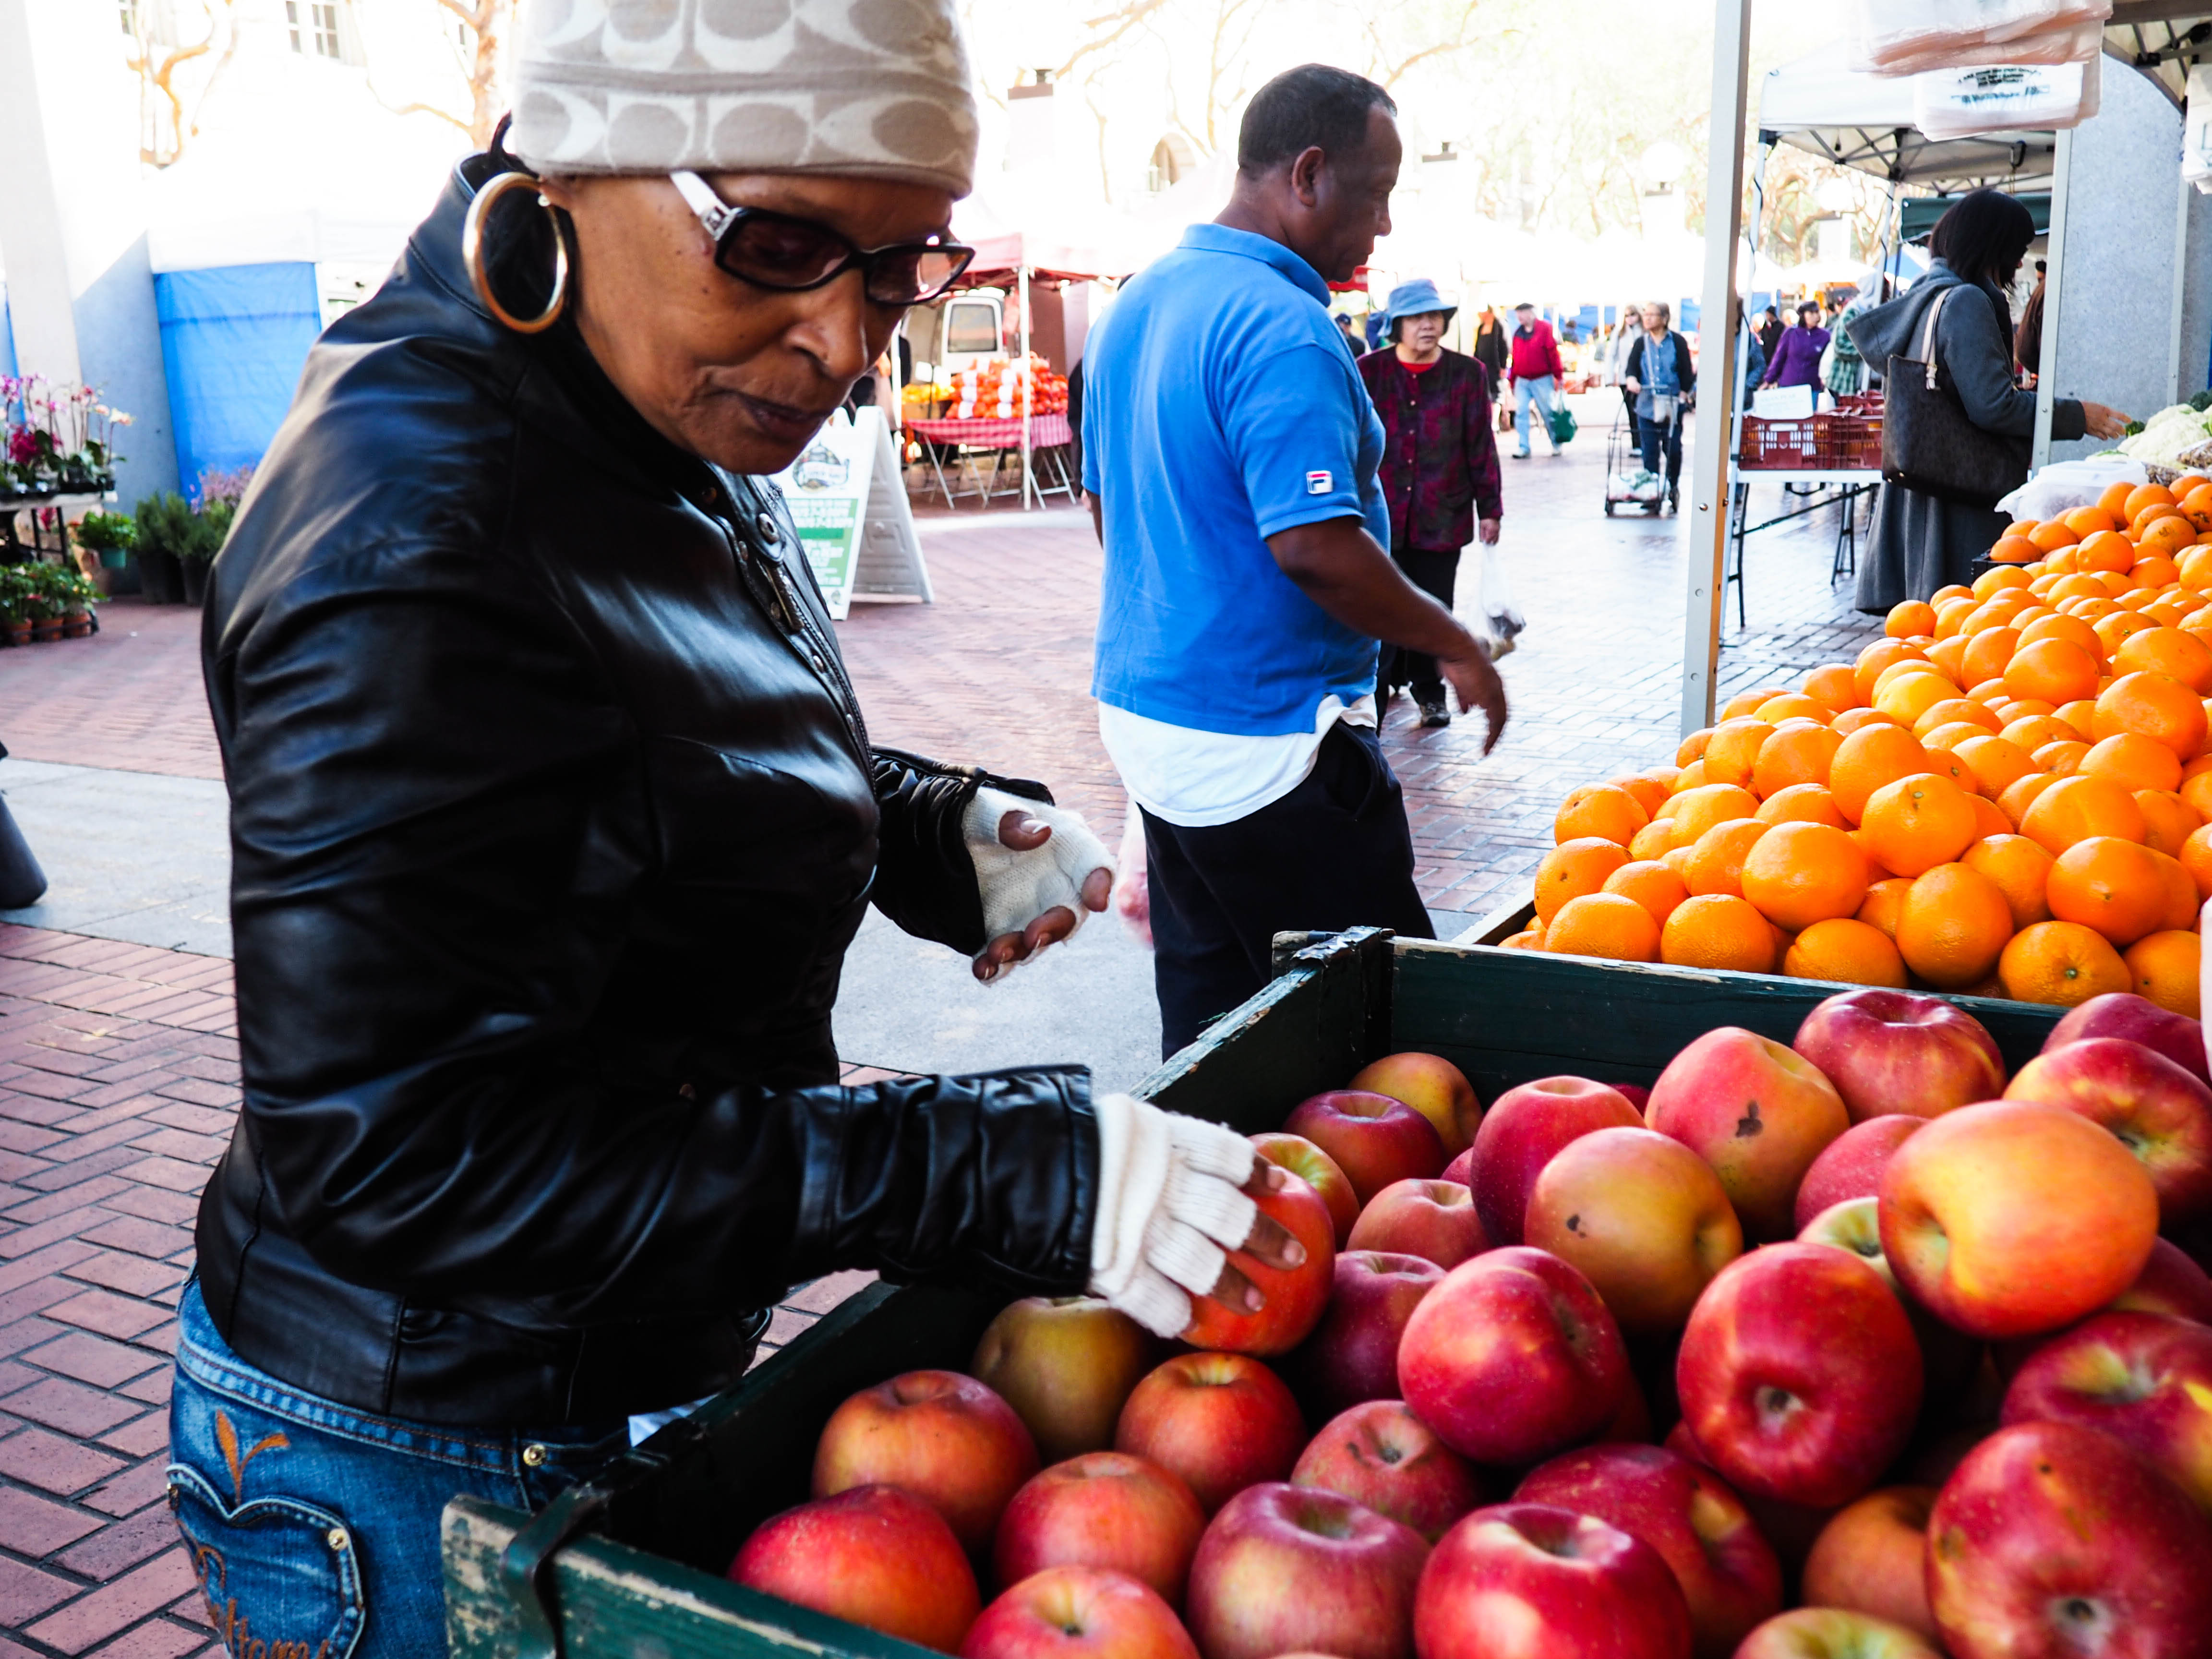 Woman Searching Through Apples on Display at Farmer's Market